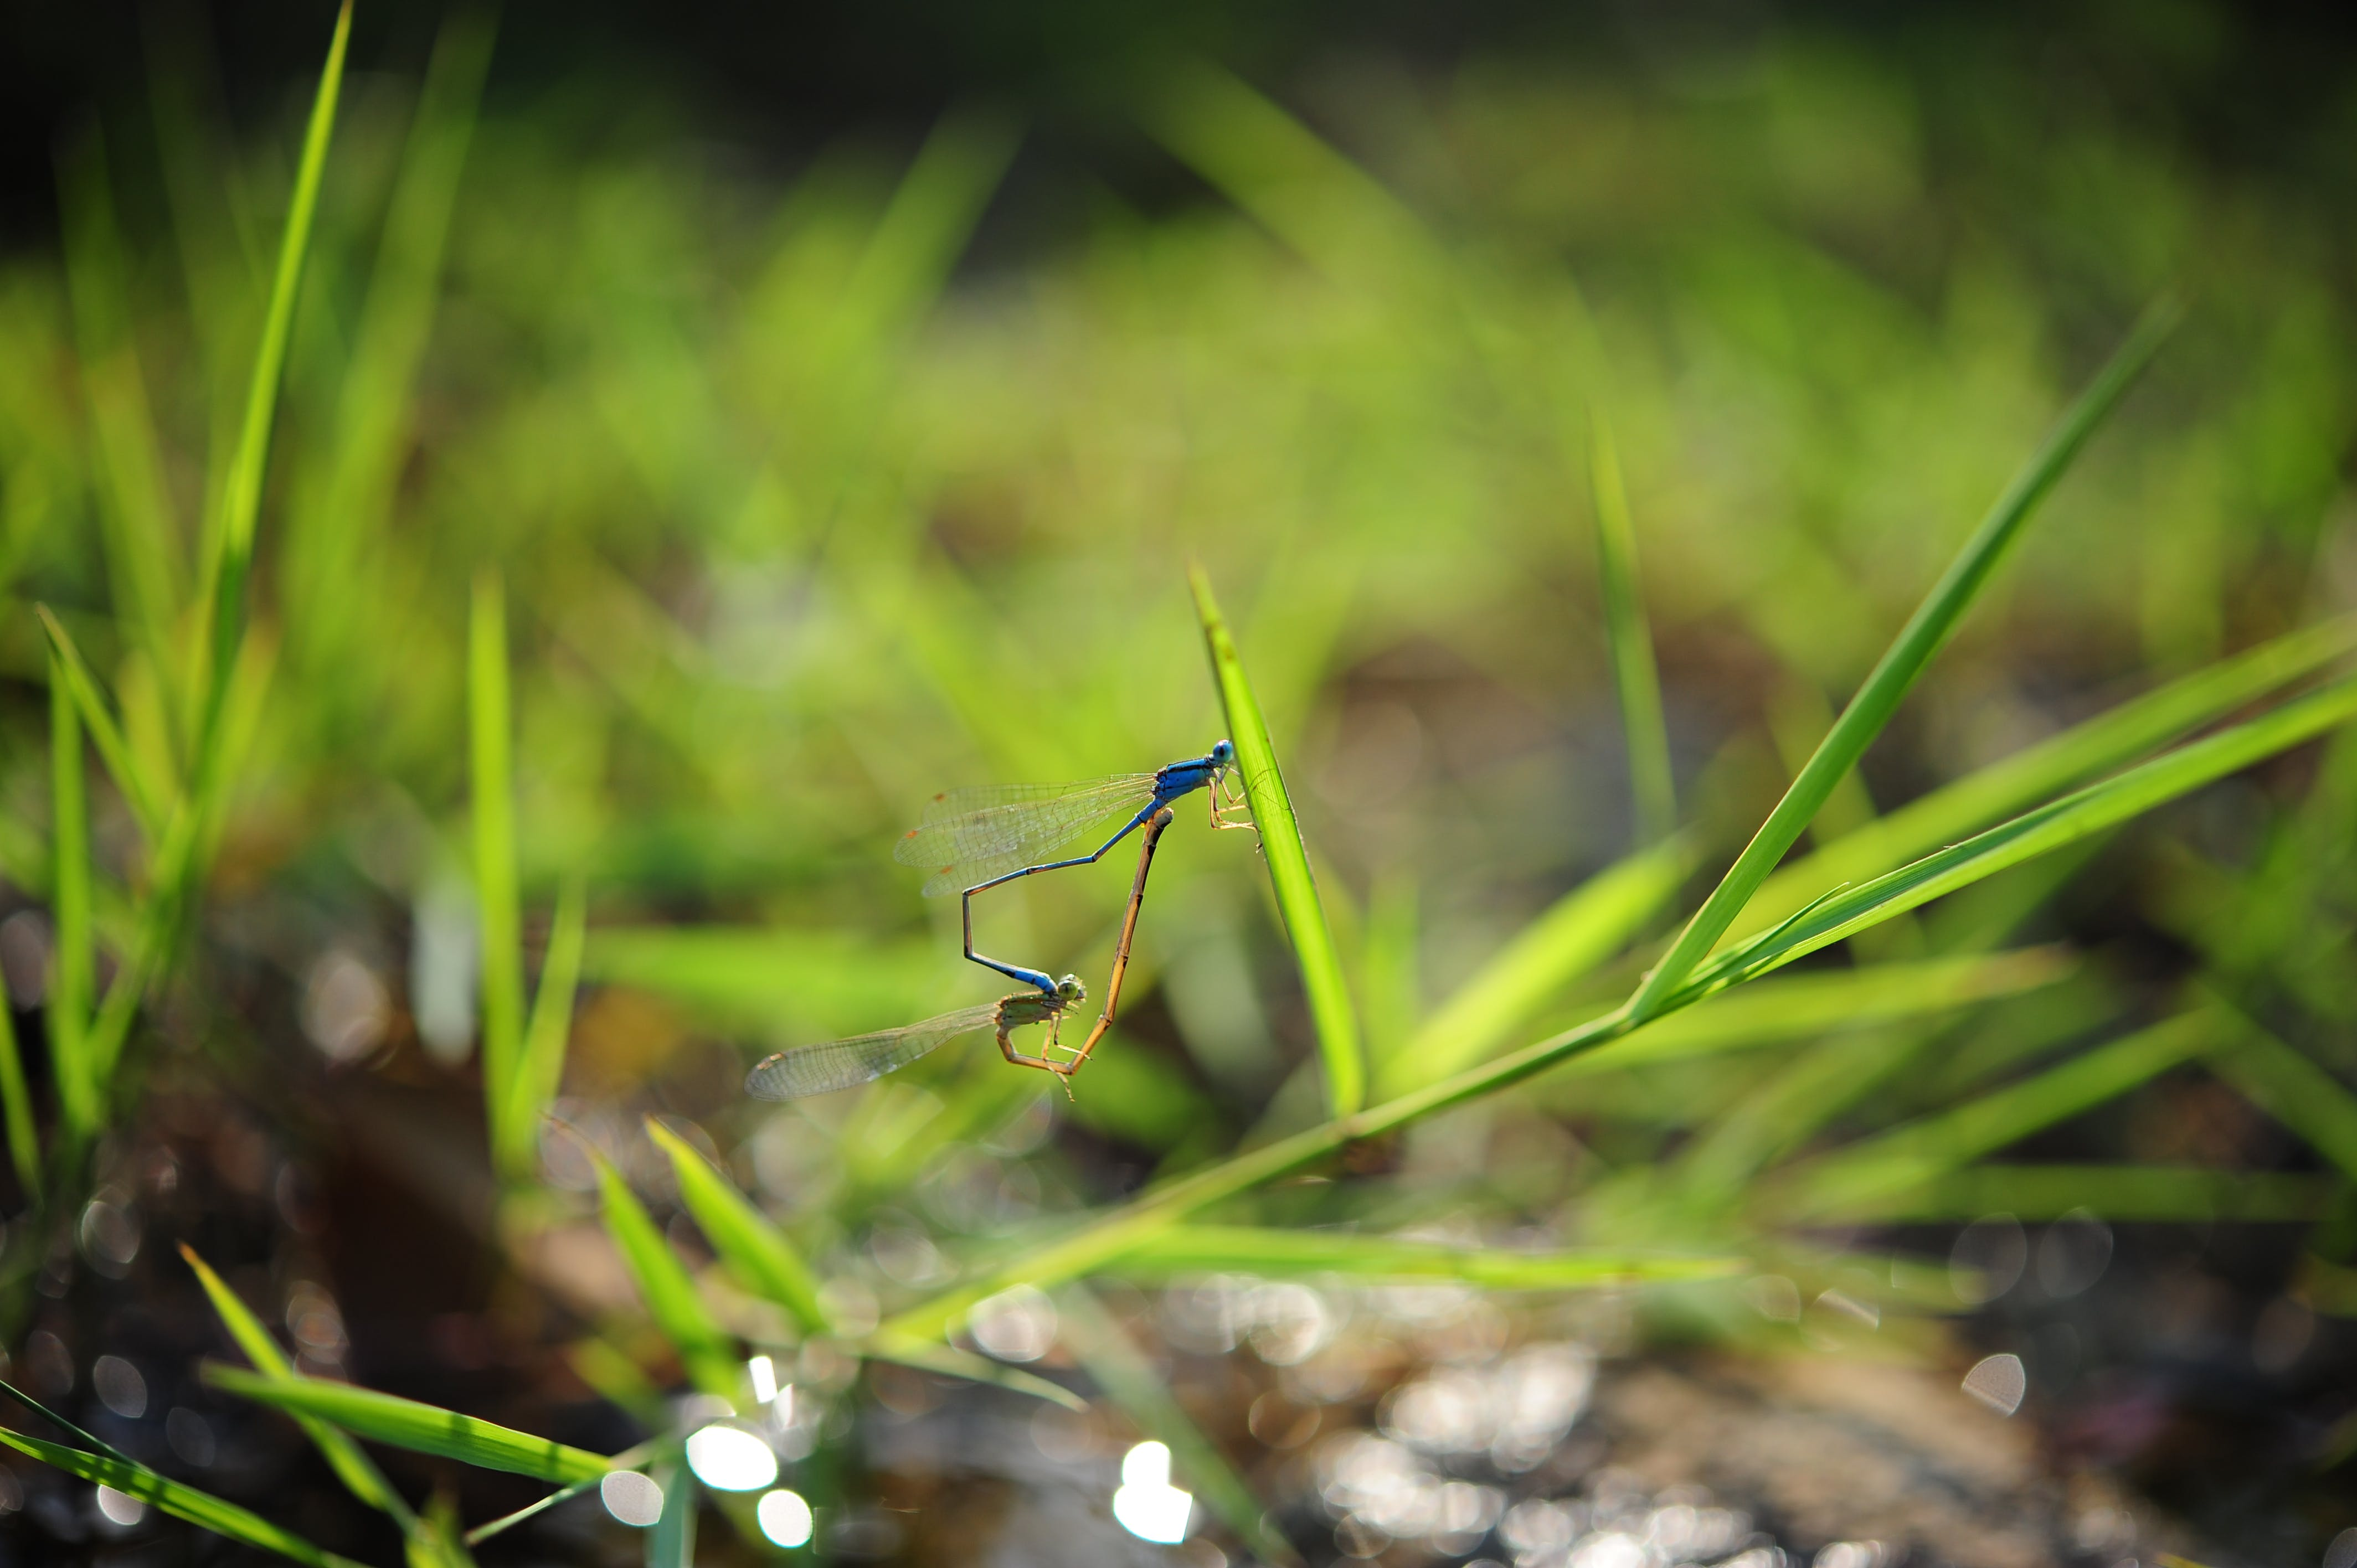 Blue Insect on Green Plant on Tilt Shift Lens Photography